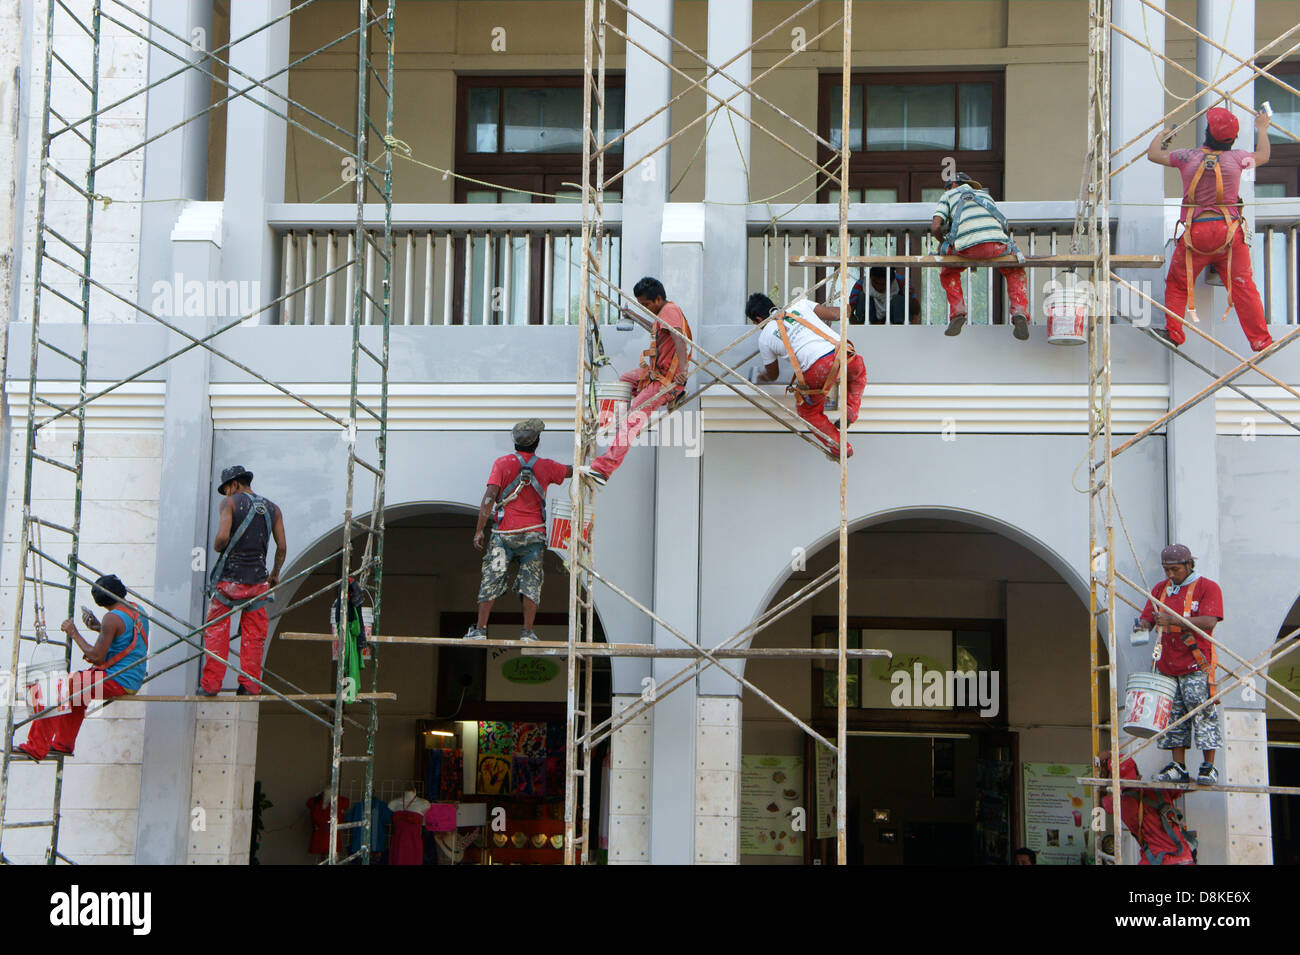 workers-on-metal-scaffolding-painting-the-facade-of-a-building-in-D8KE6X.jpg